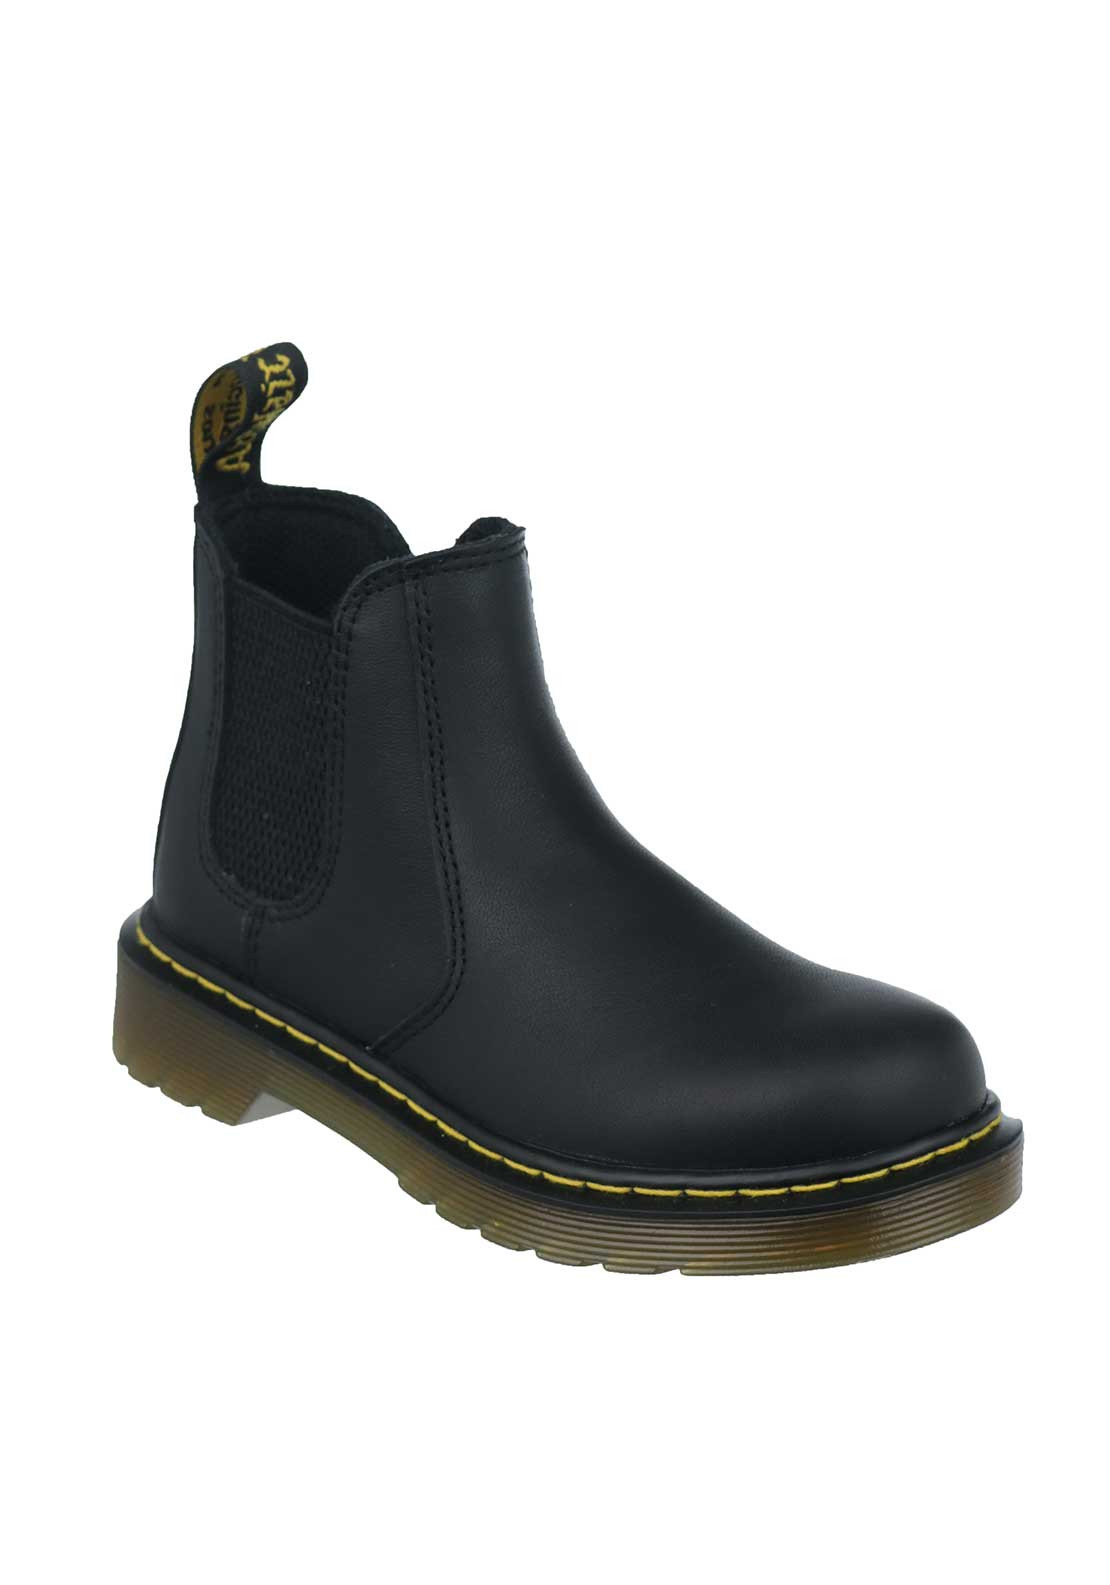 Dr. Martens Youth Girls Shanzi Boots, Black